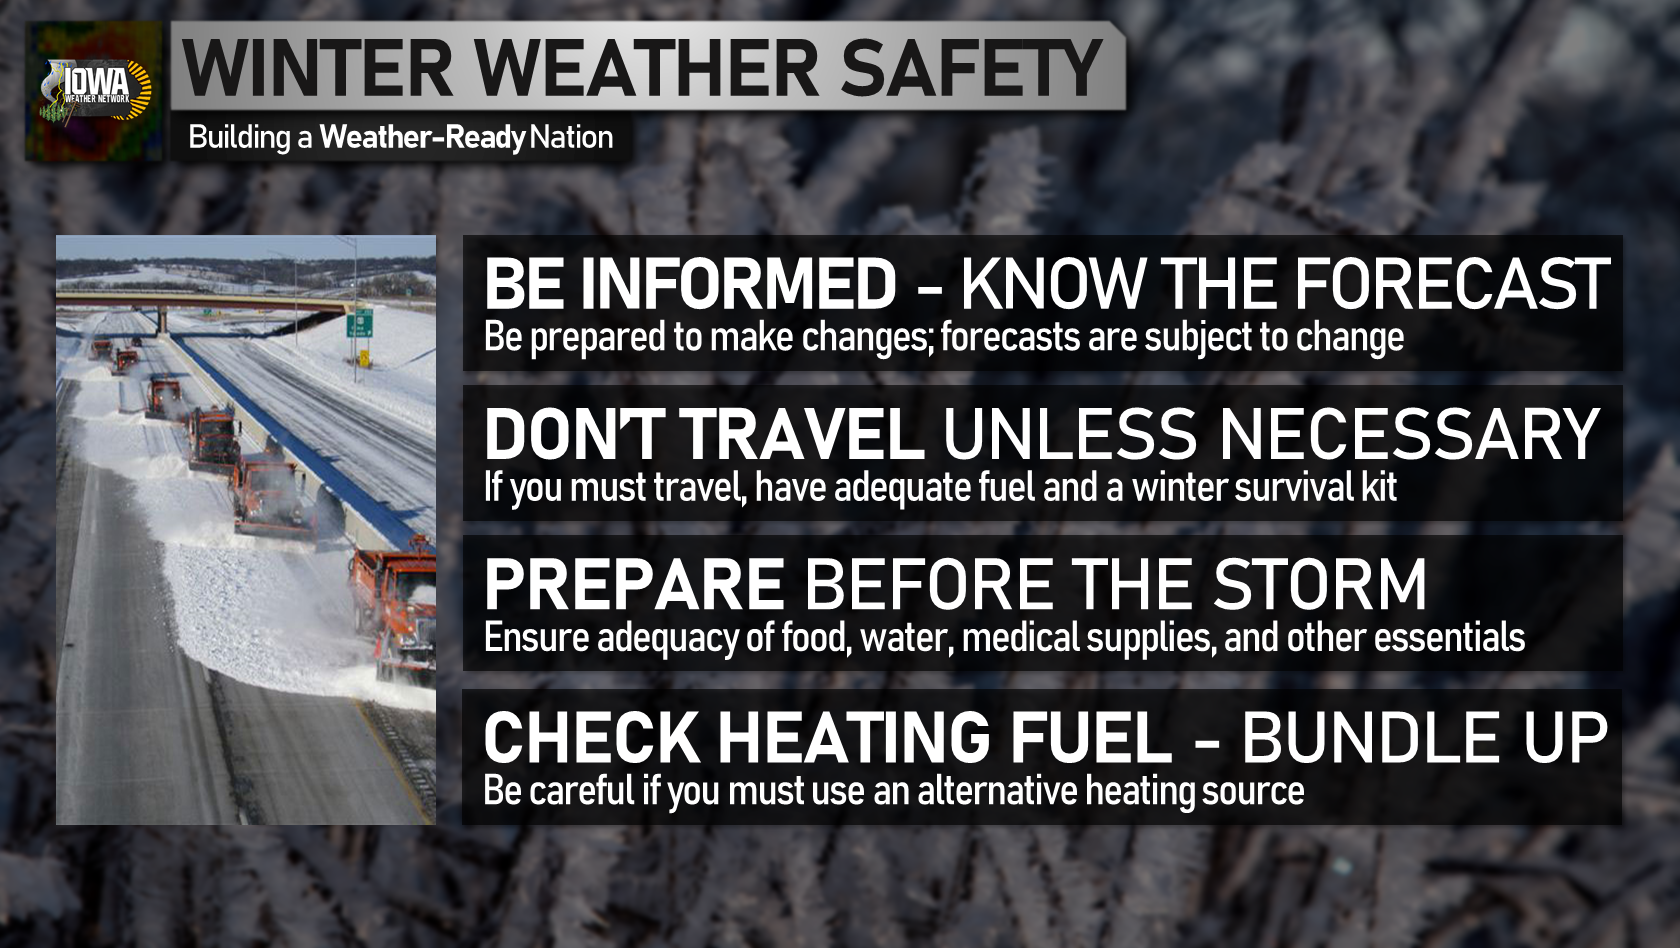 Winter weather safety tips